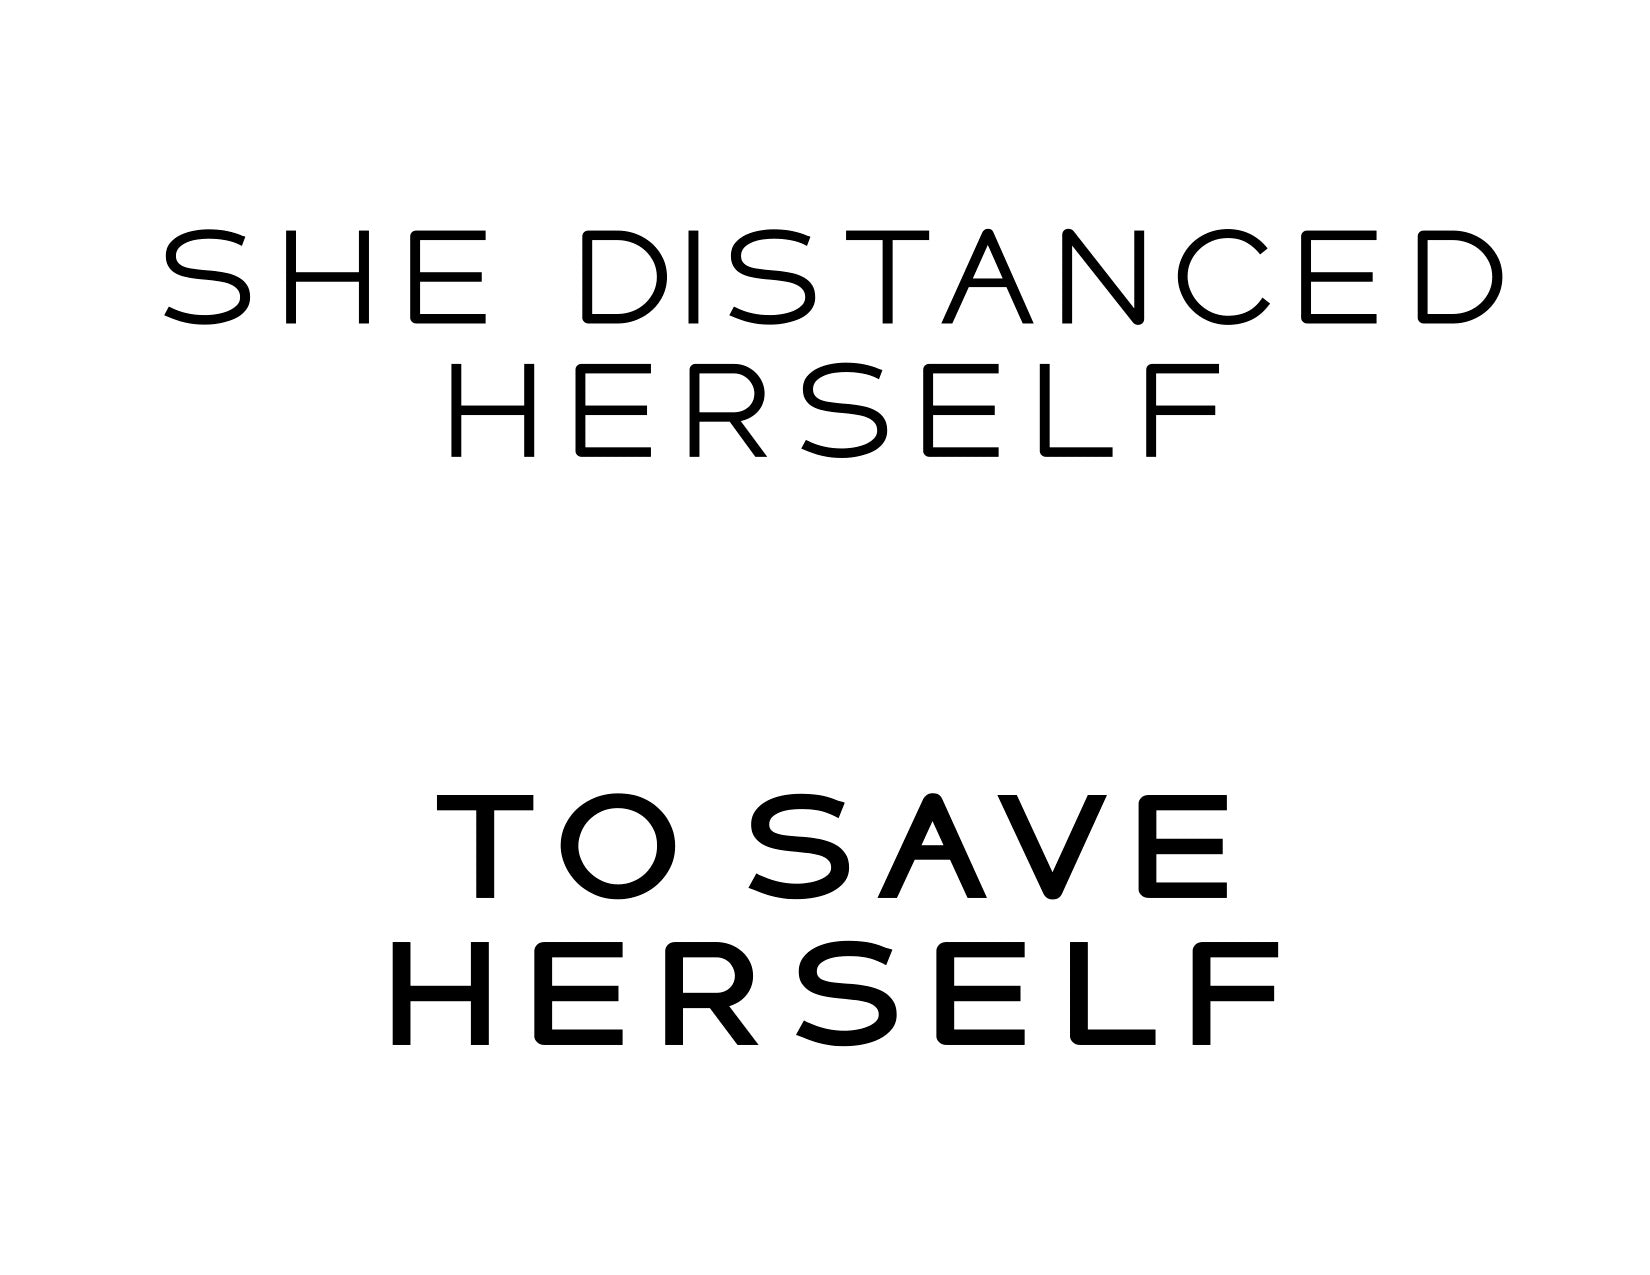 She Distanced Herself To Save Herself